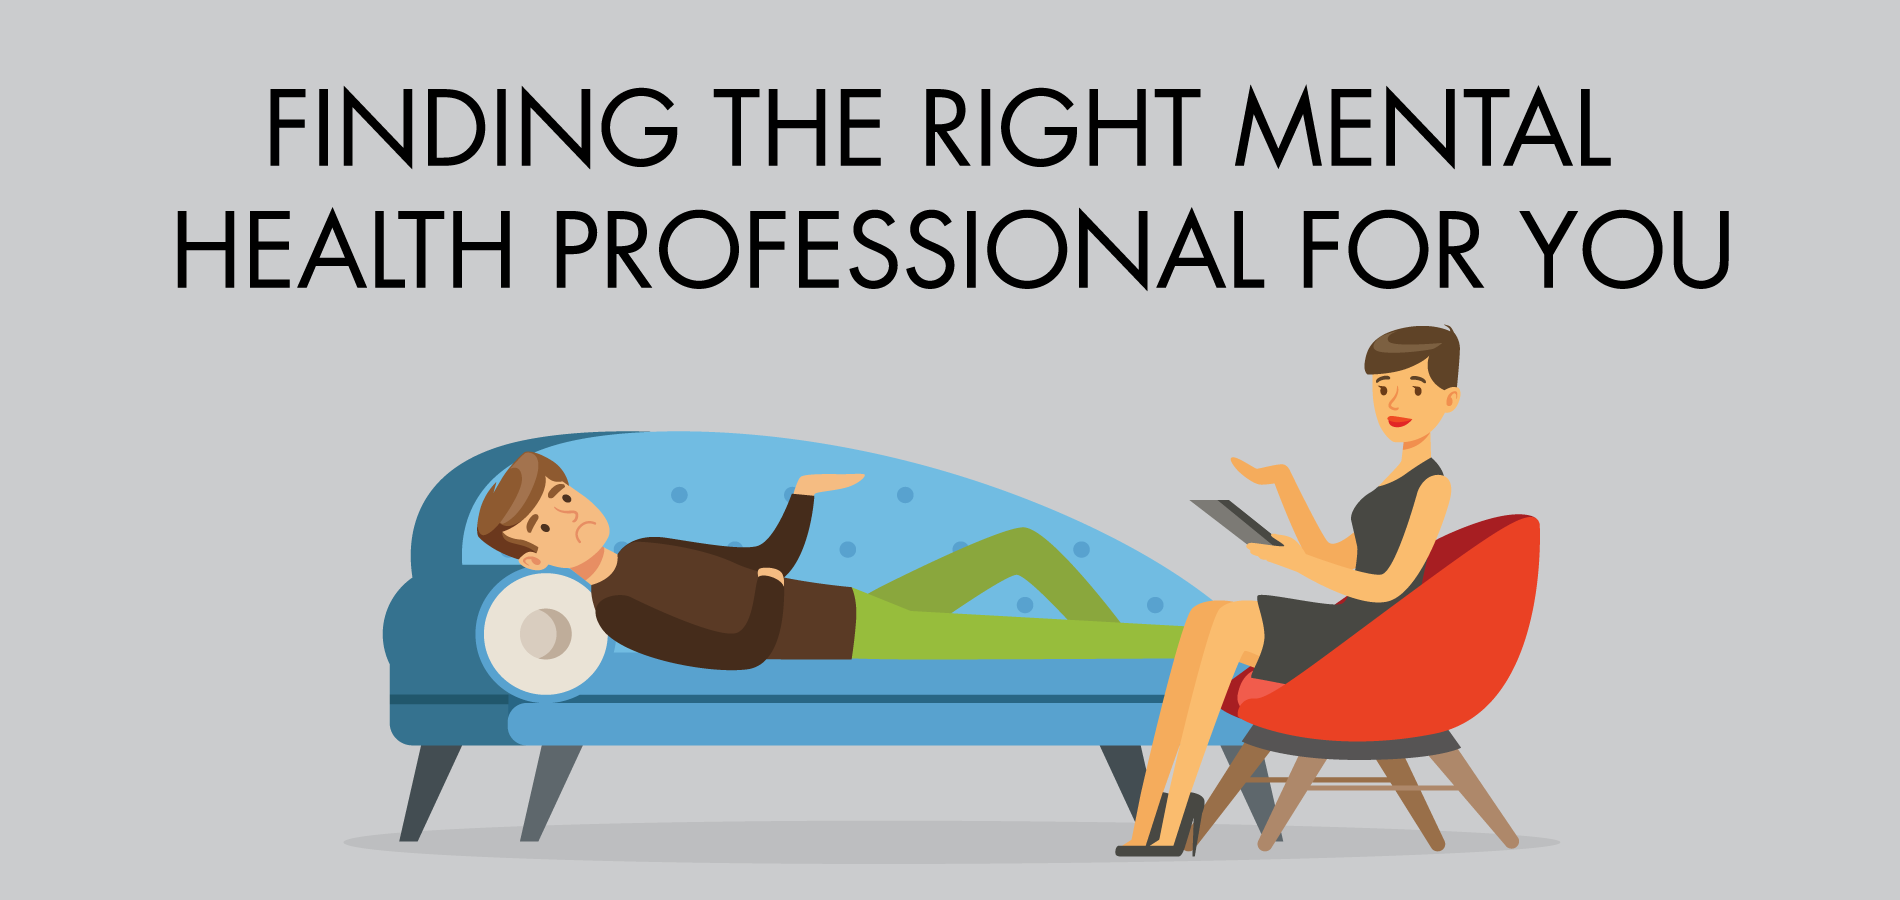 Finding the right Mental health Professional for you